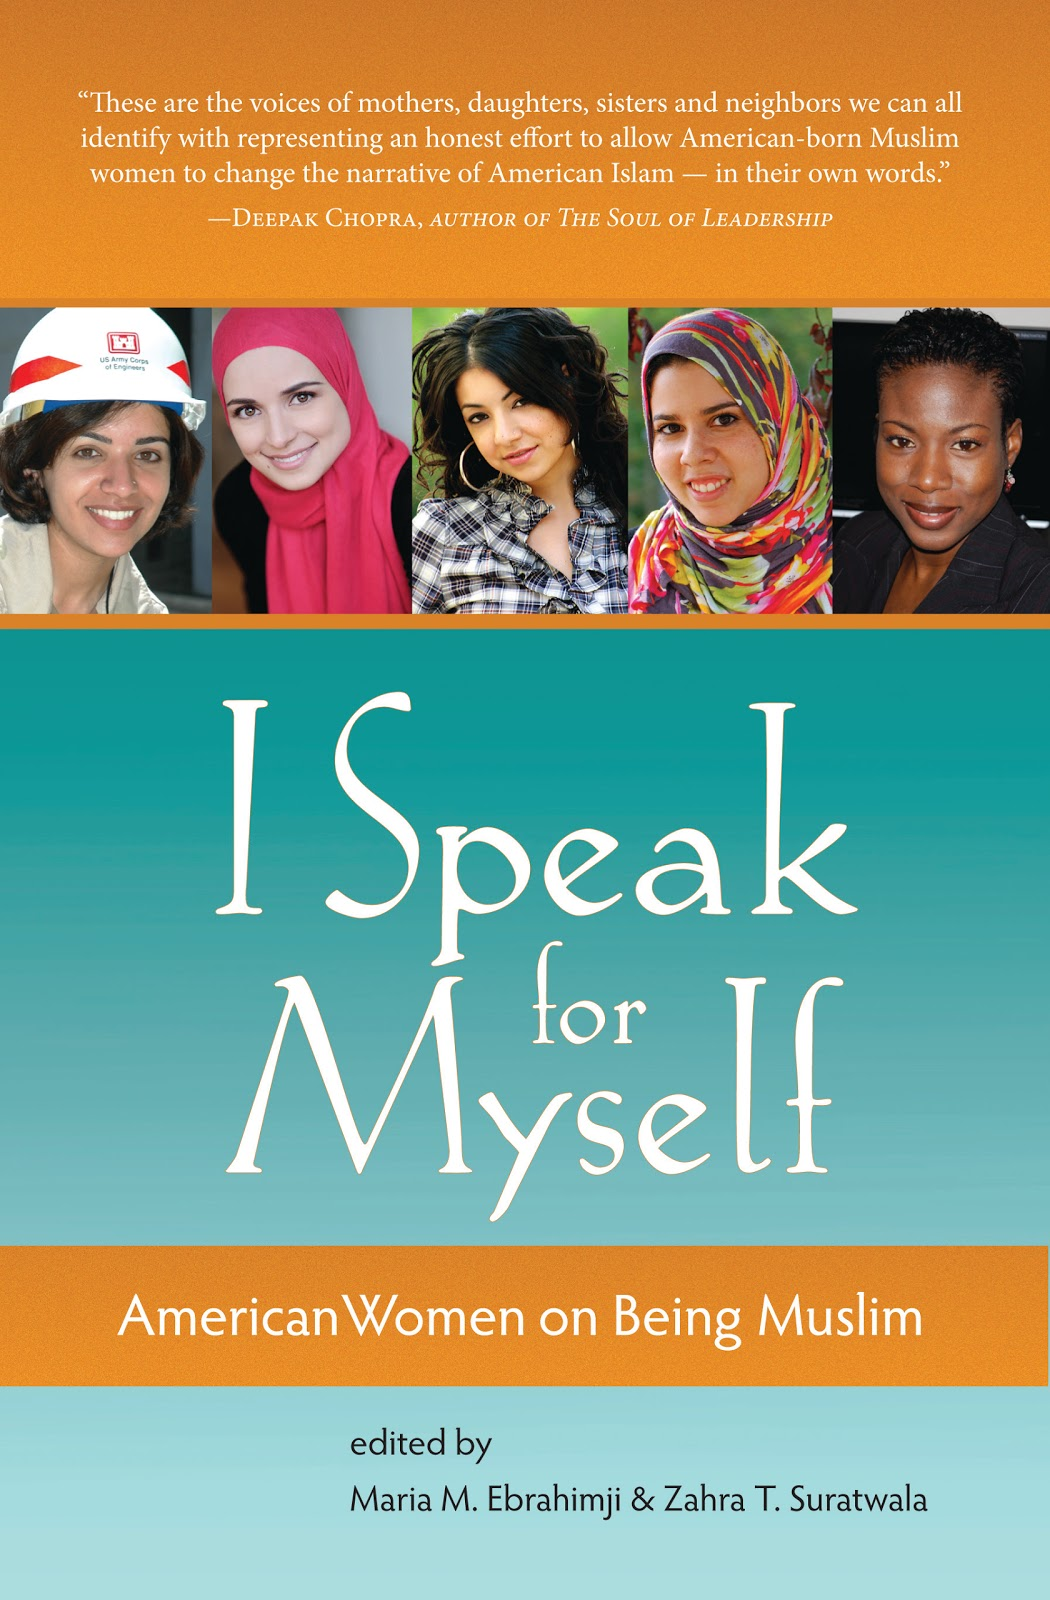 ... of Guidance: Upcoming Book on American Muslim Women (press release